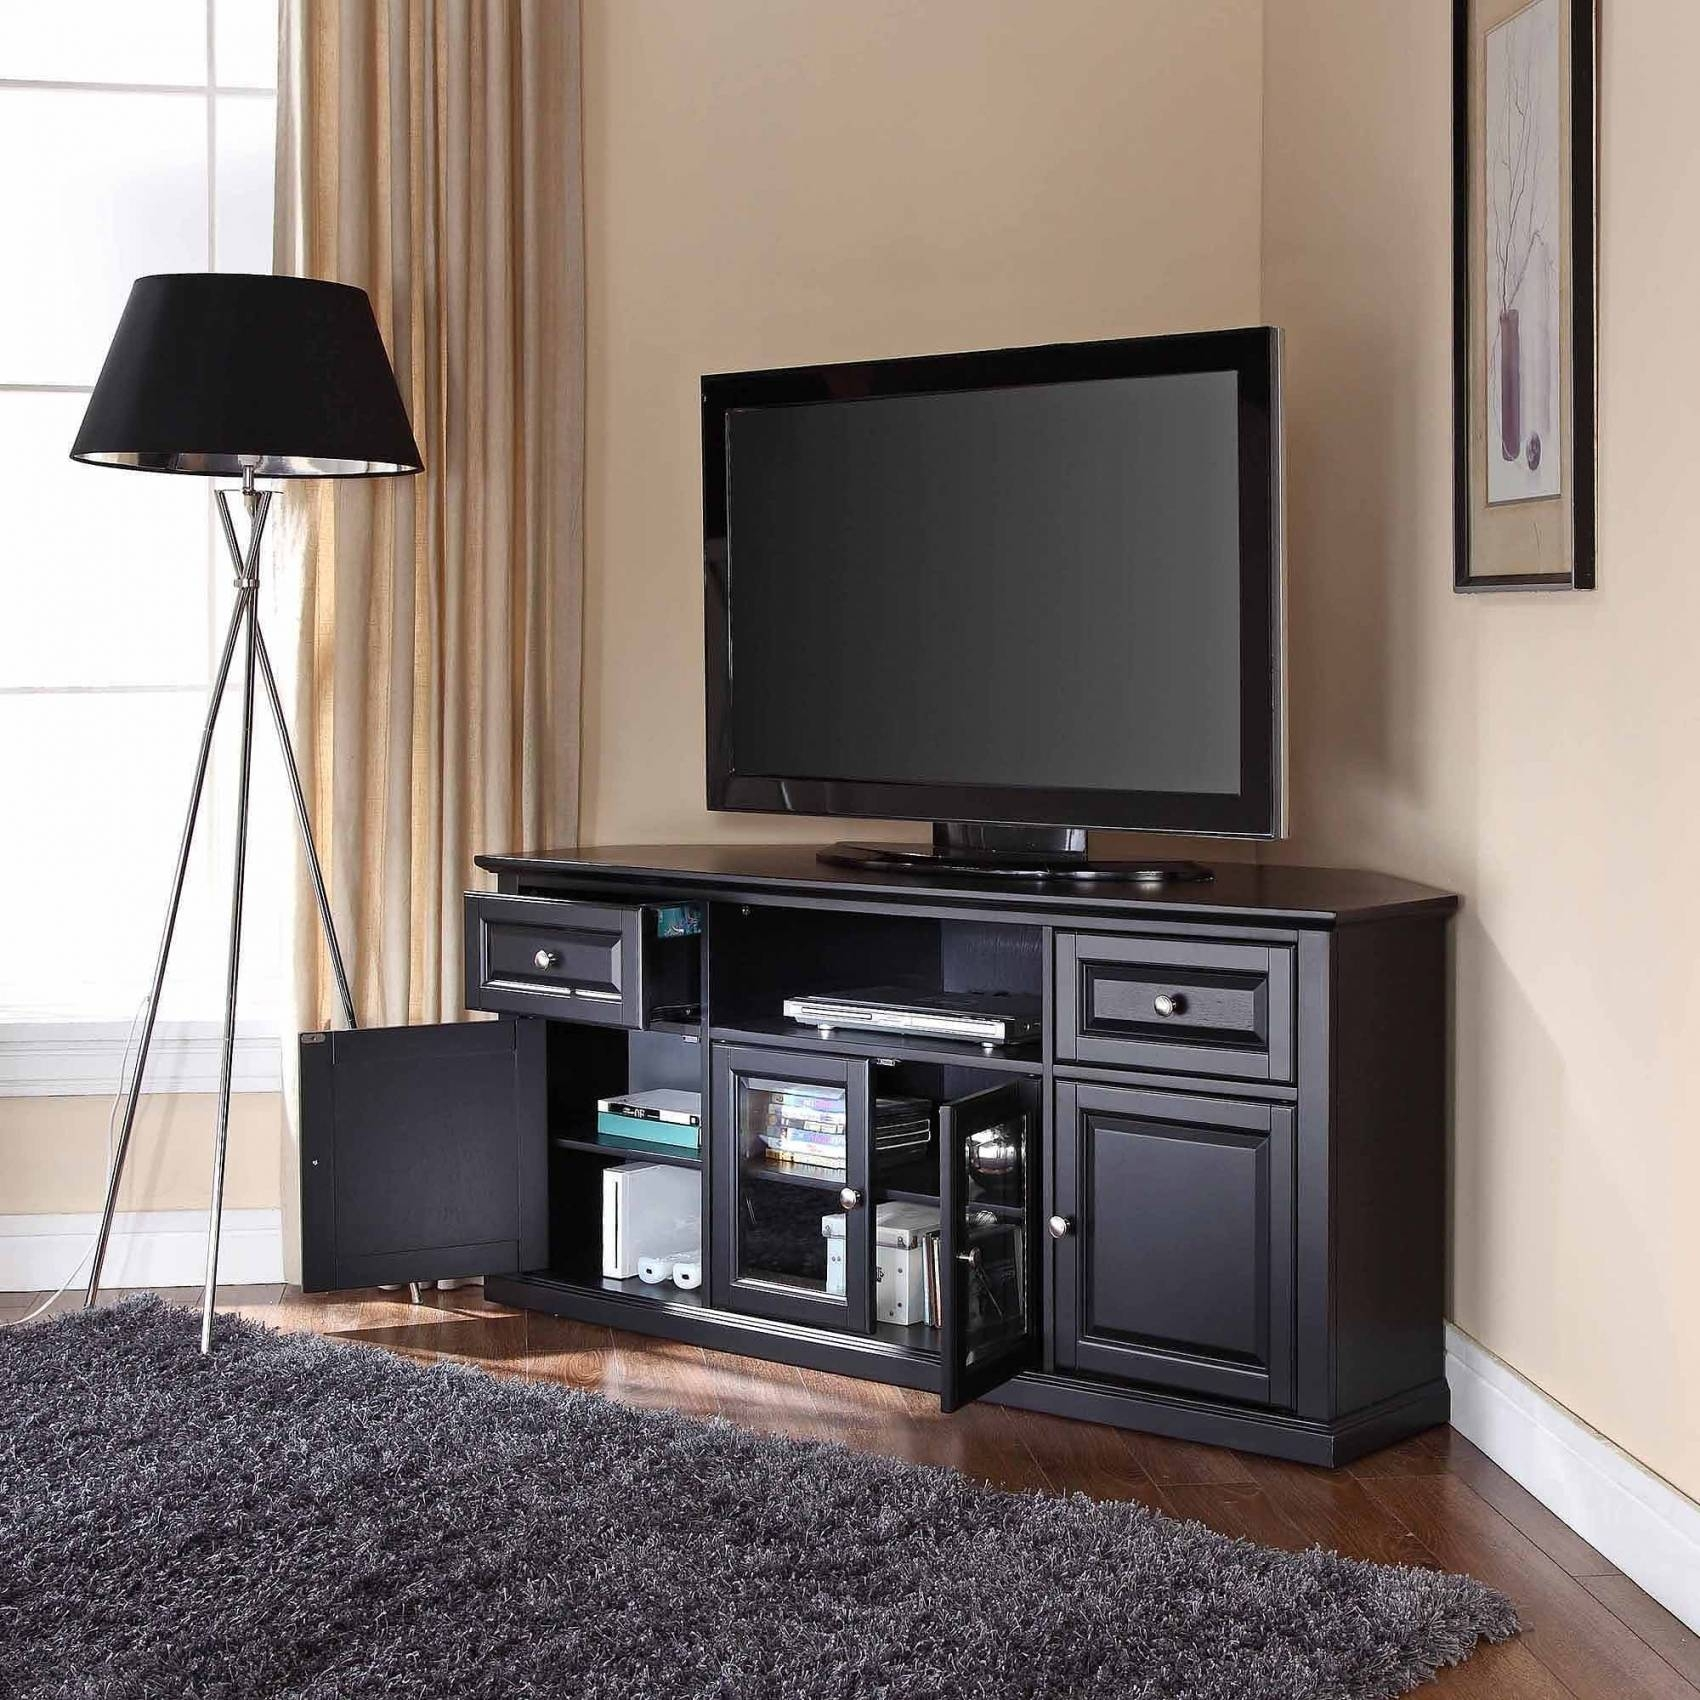 Awesome Corner Tv Stands For 55 Inch Tv Lovely | Vgmnation Throughout Corner Tv Stands For 55 Inch Tv (View 1 of 15)